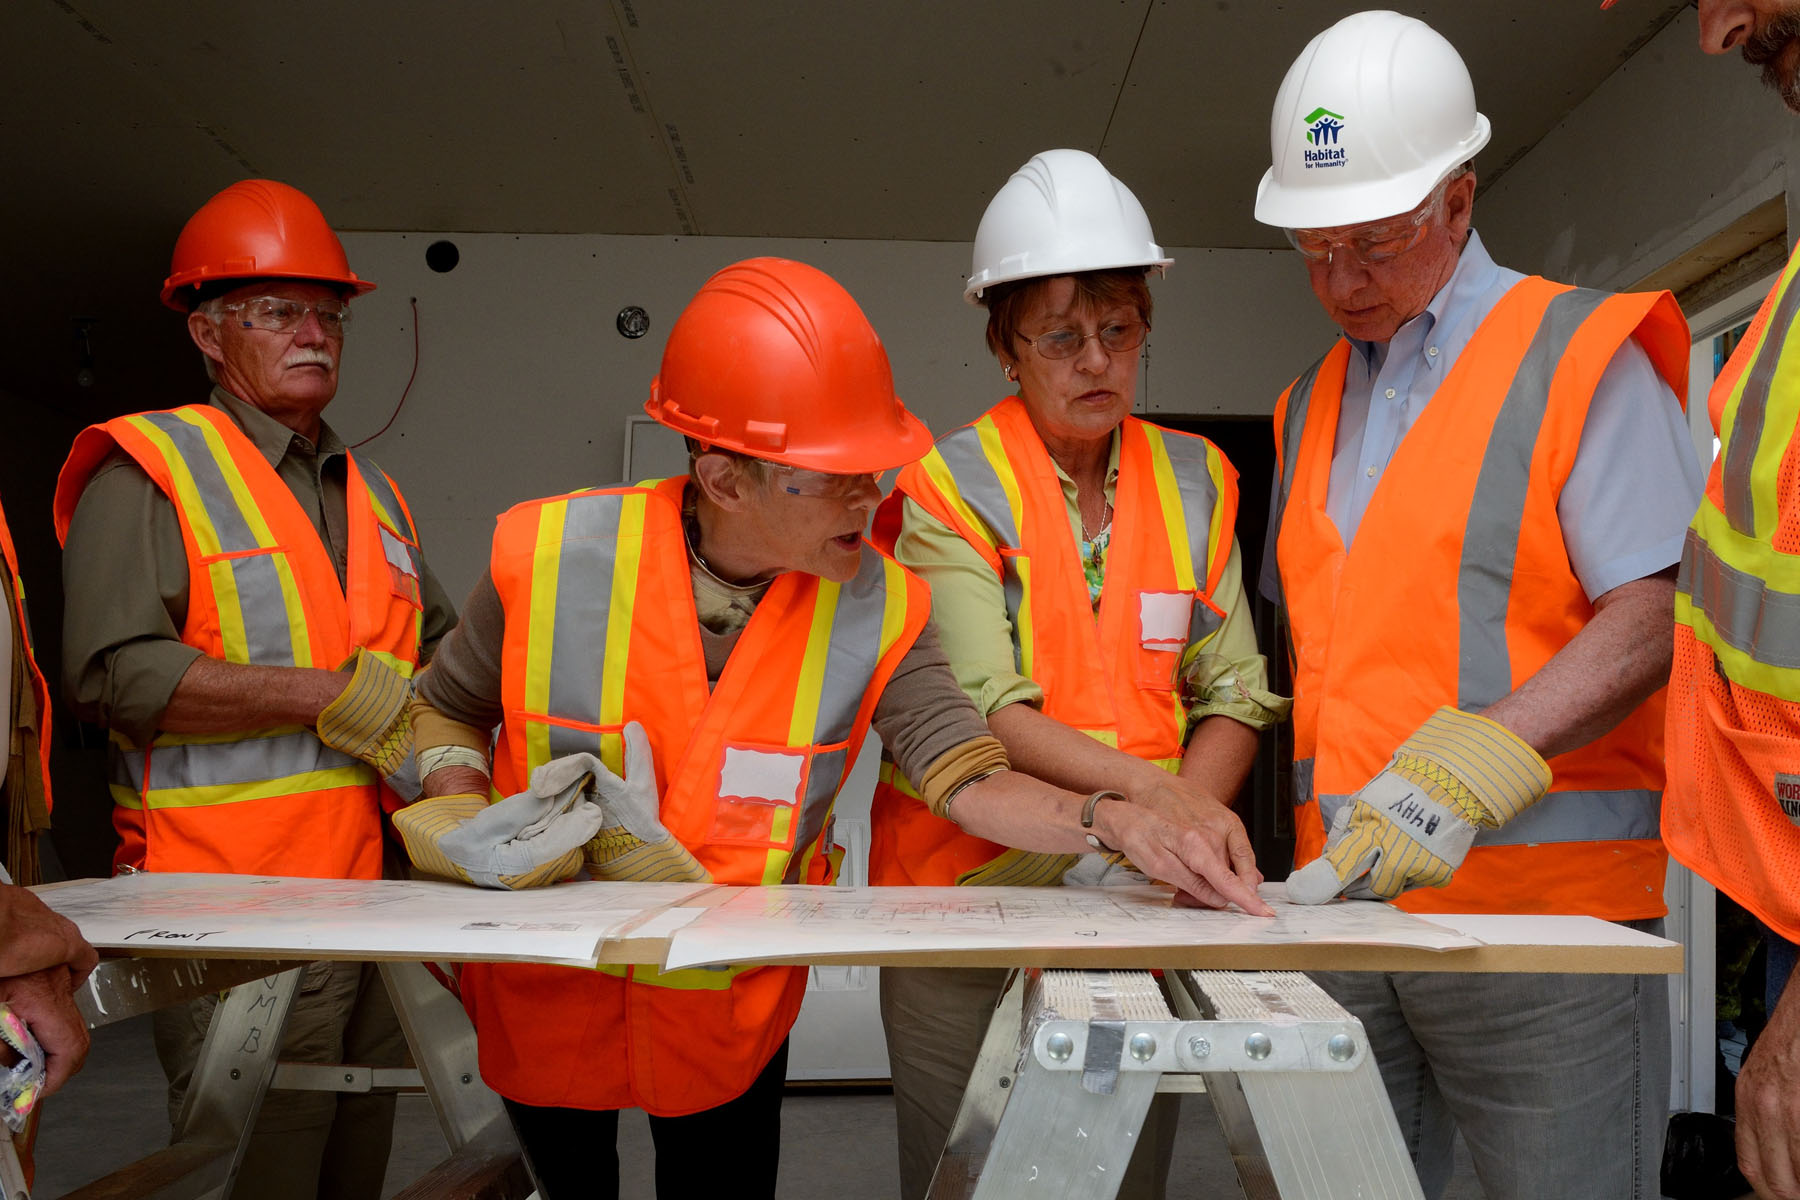 Their Excellencies later visited the first Habitat for Humanity build on First Nation settlement land in Canada.